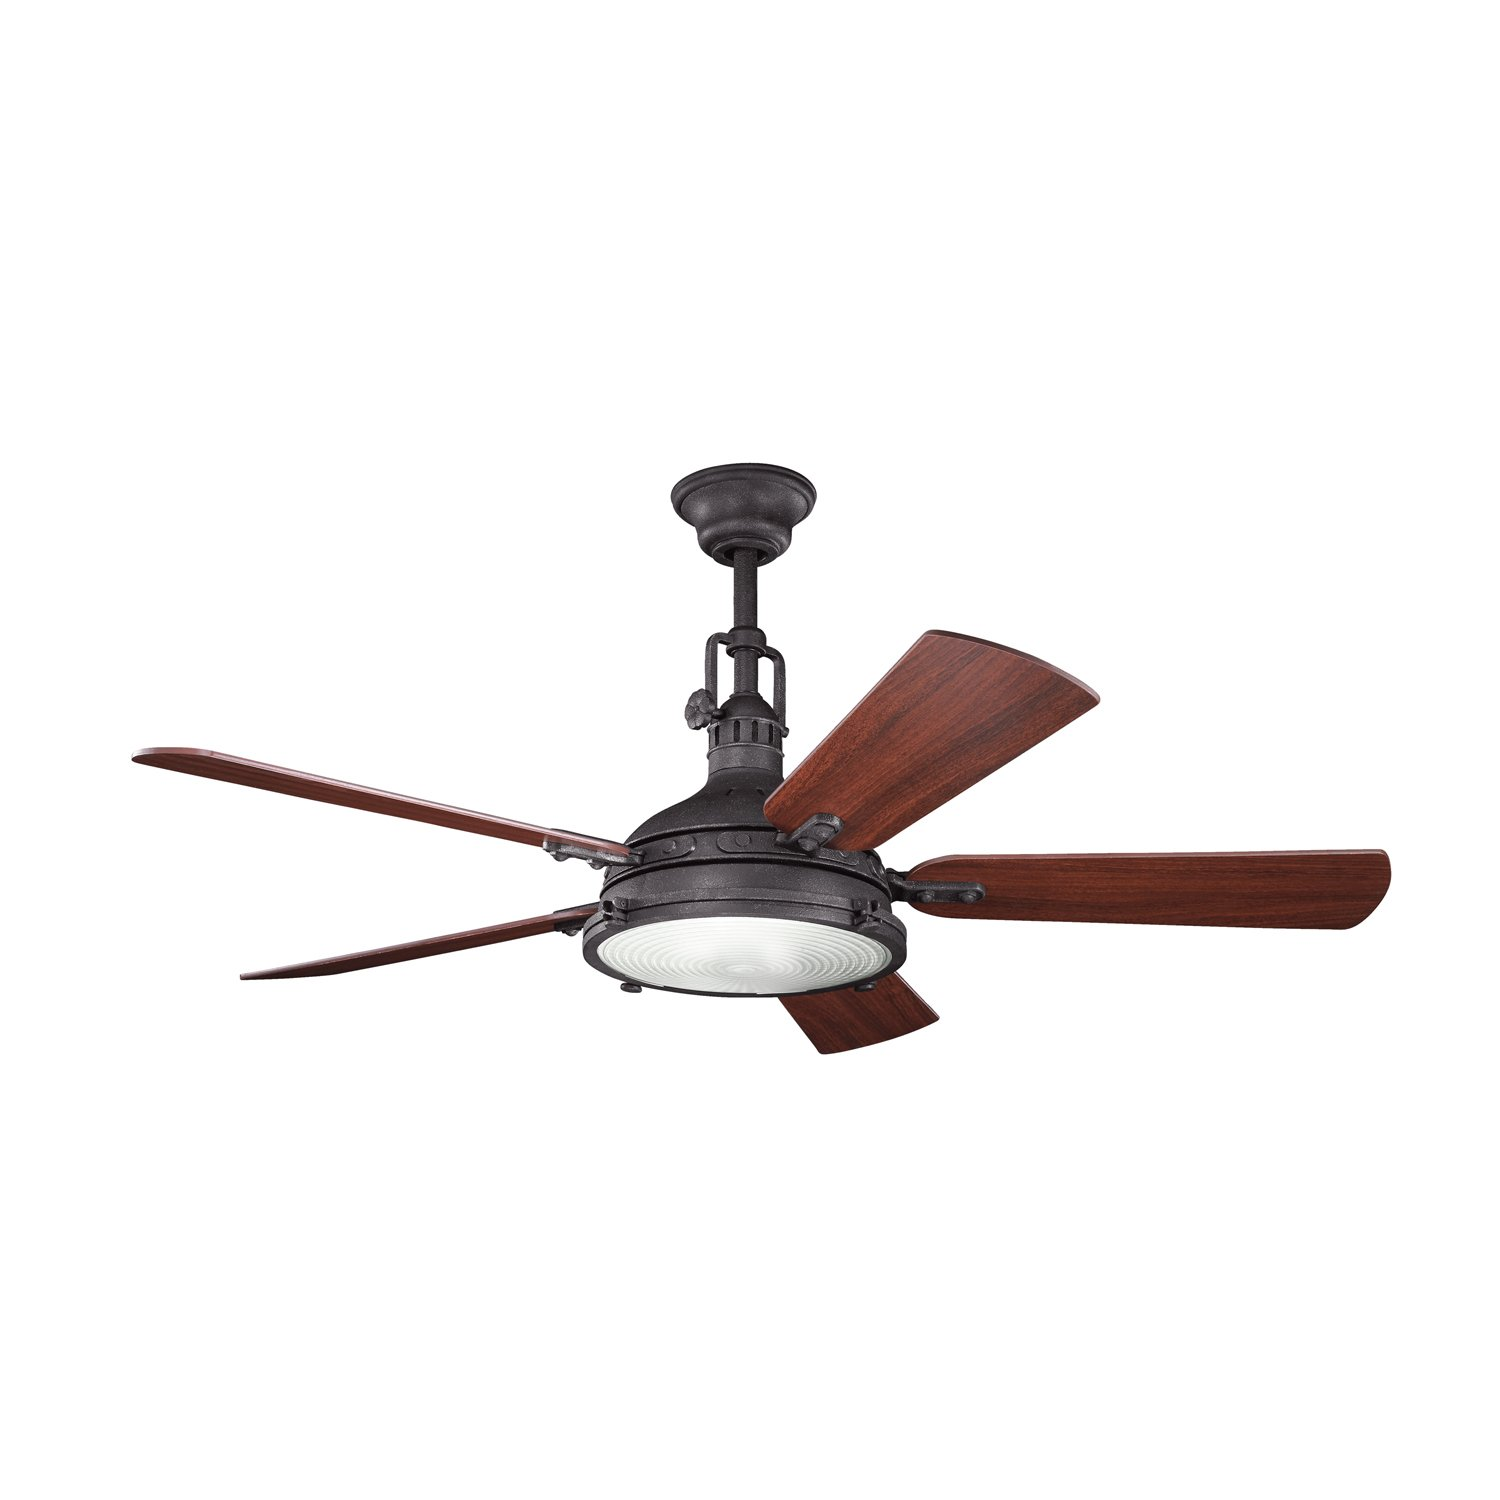 Kichler OBB 56 Ceiling Fan Amazon